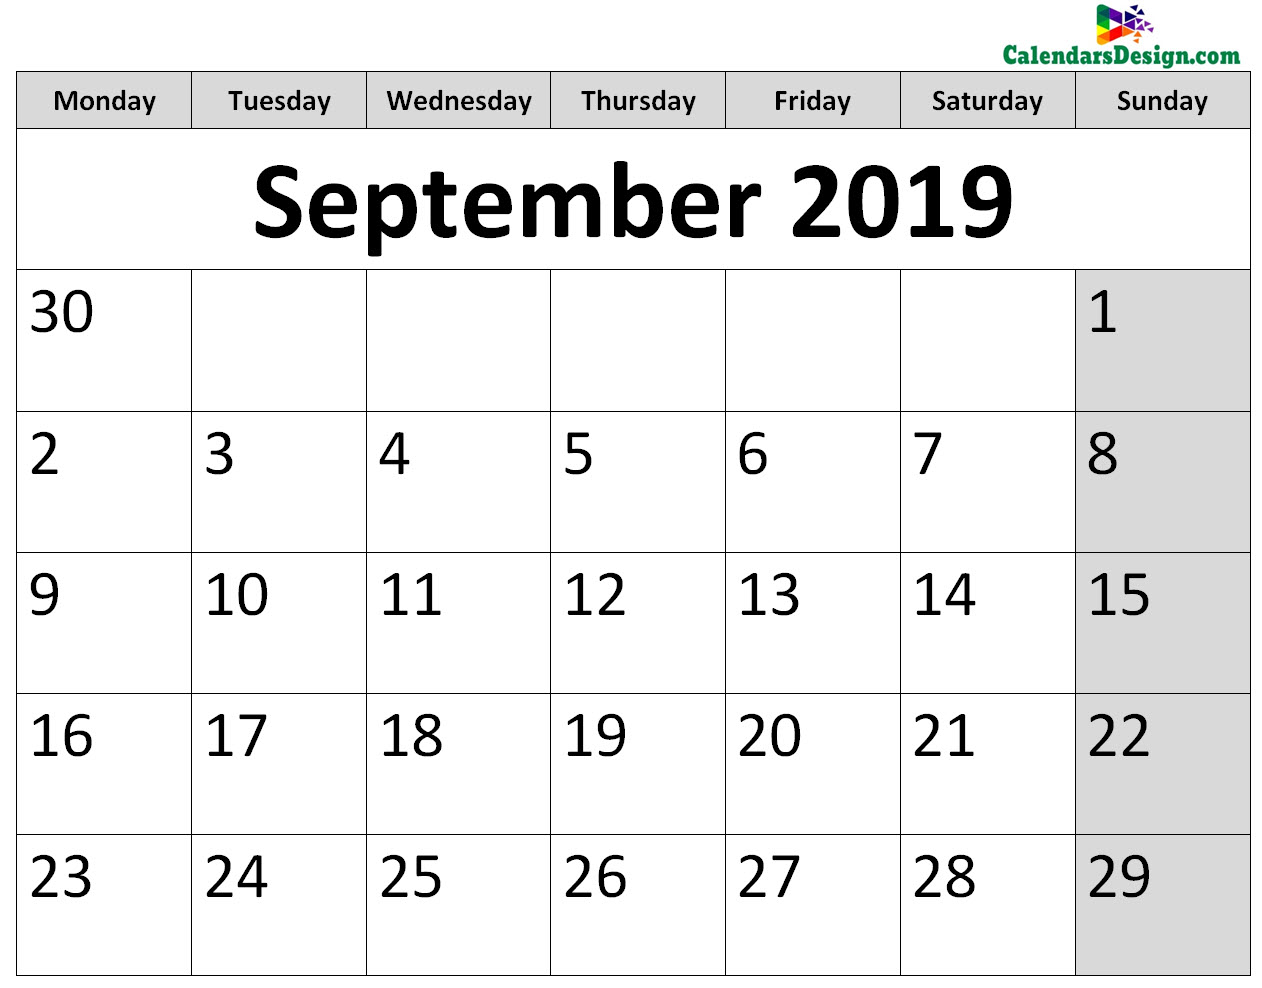 Printable Calendar for September 2019 Page